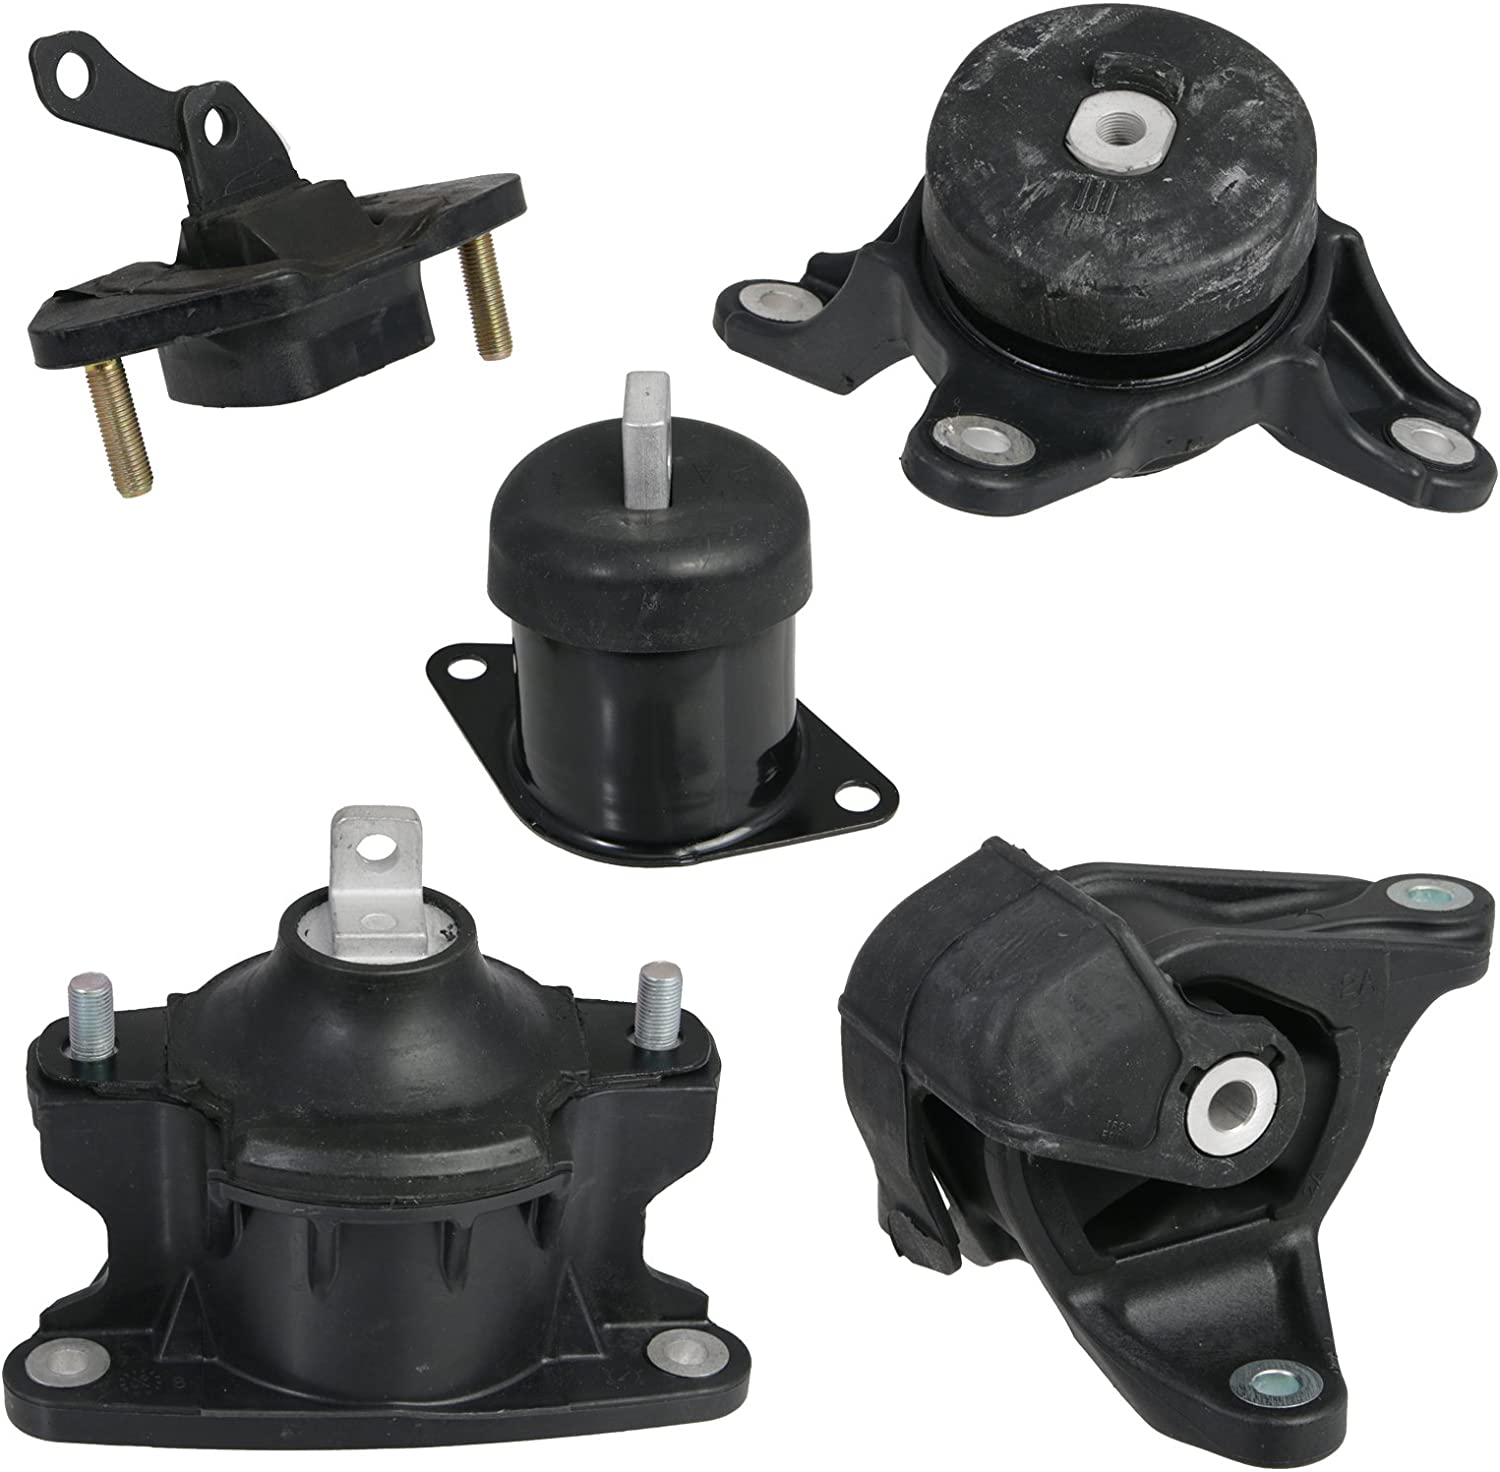 5pc Motor Mounts Set Kit Compatible with 08-12 Honda Accord and 09-13 Acura TSX - 2.4L Automatic Auto Transmission - Engine Mounts